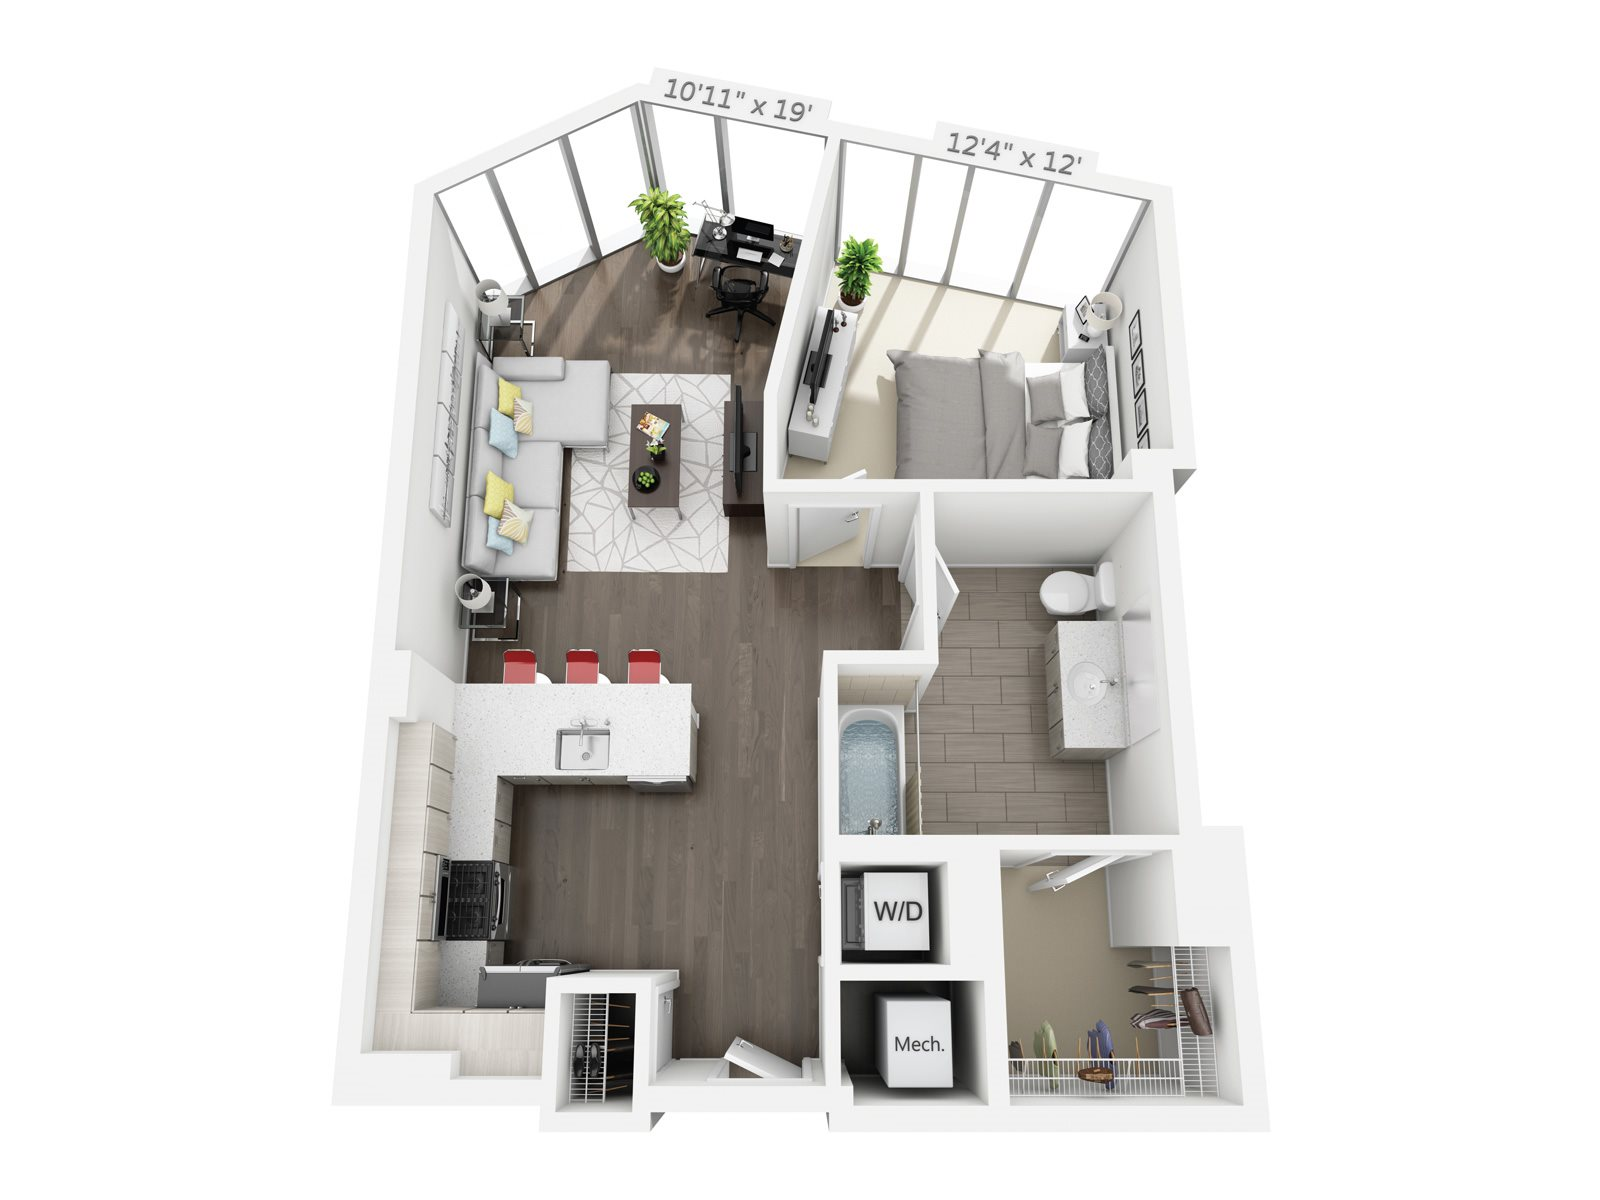 1 BEDROOM/1 BATH B3 Floor Plan 4